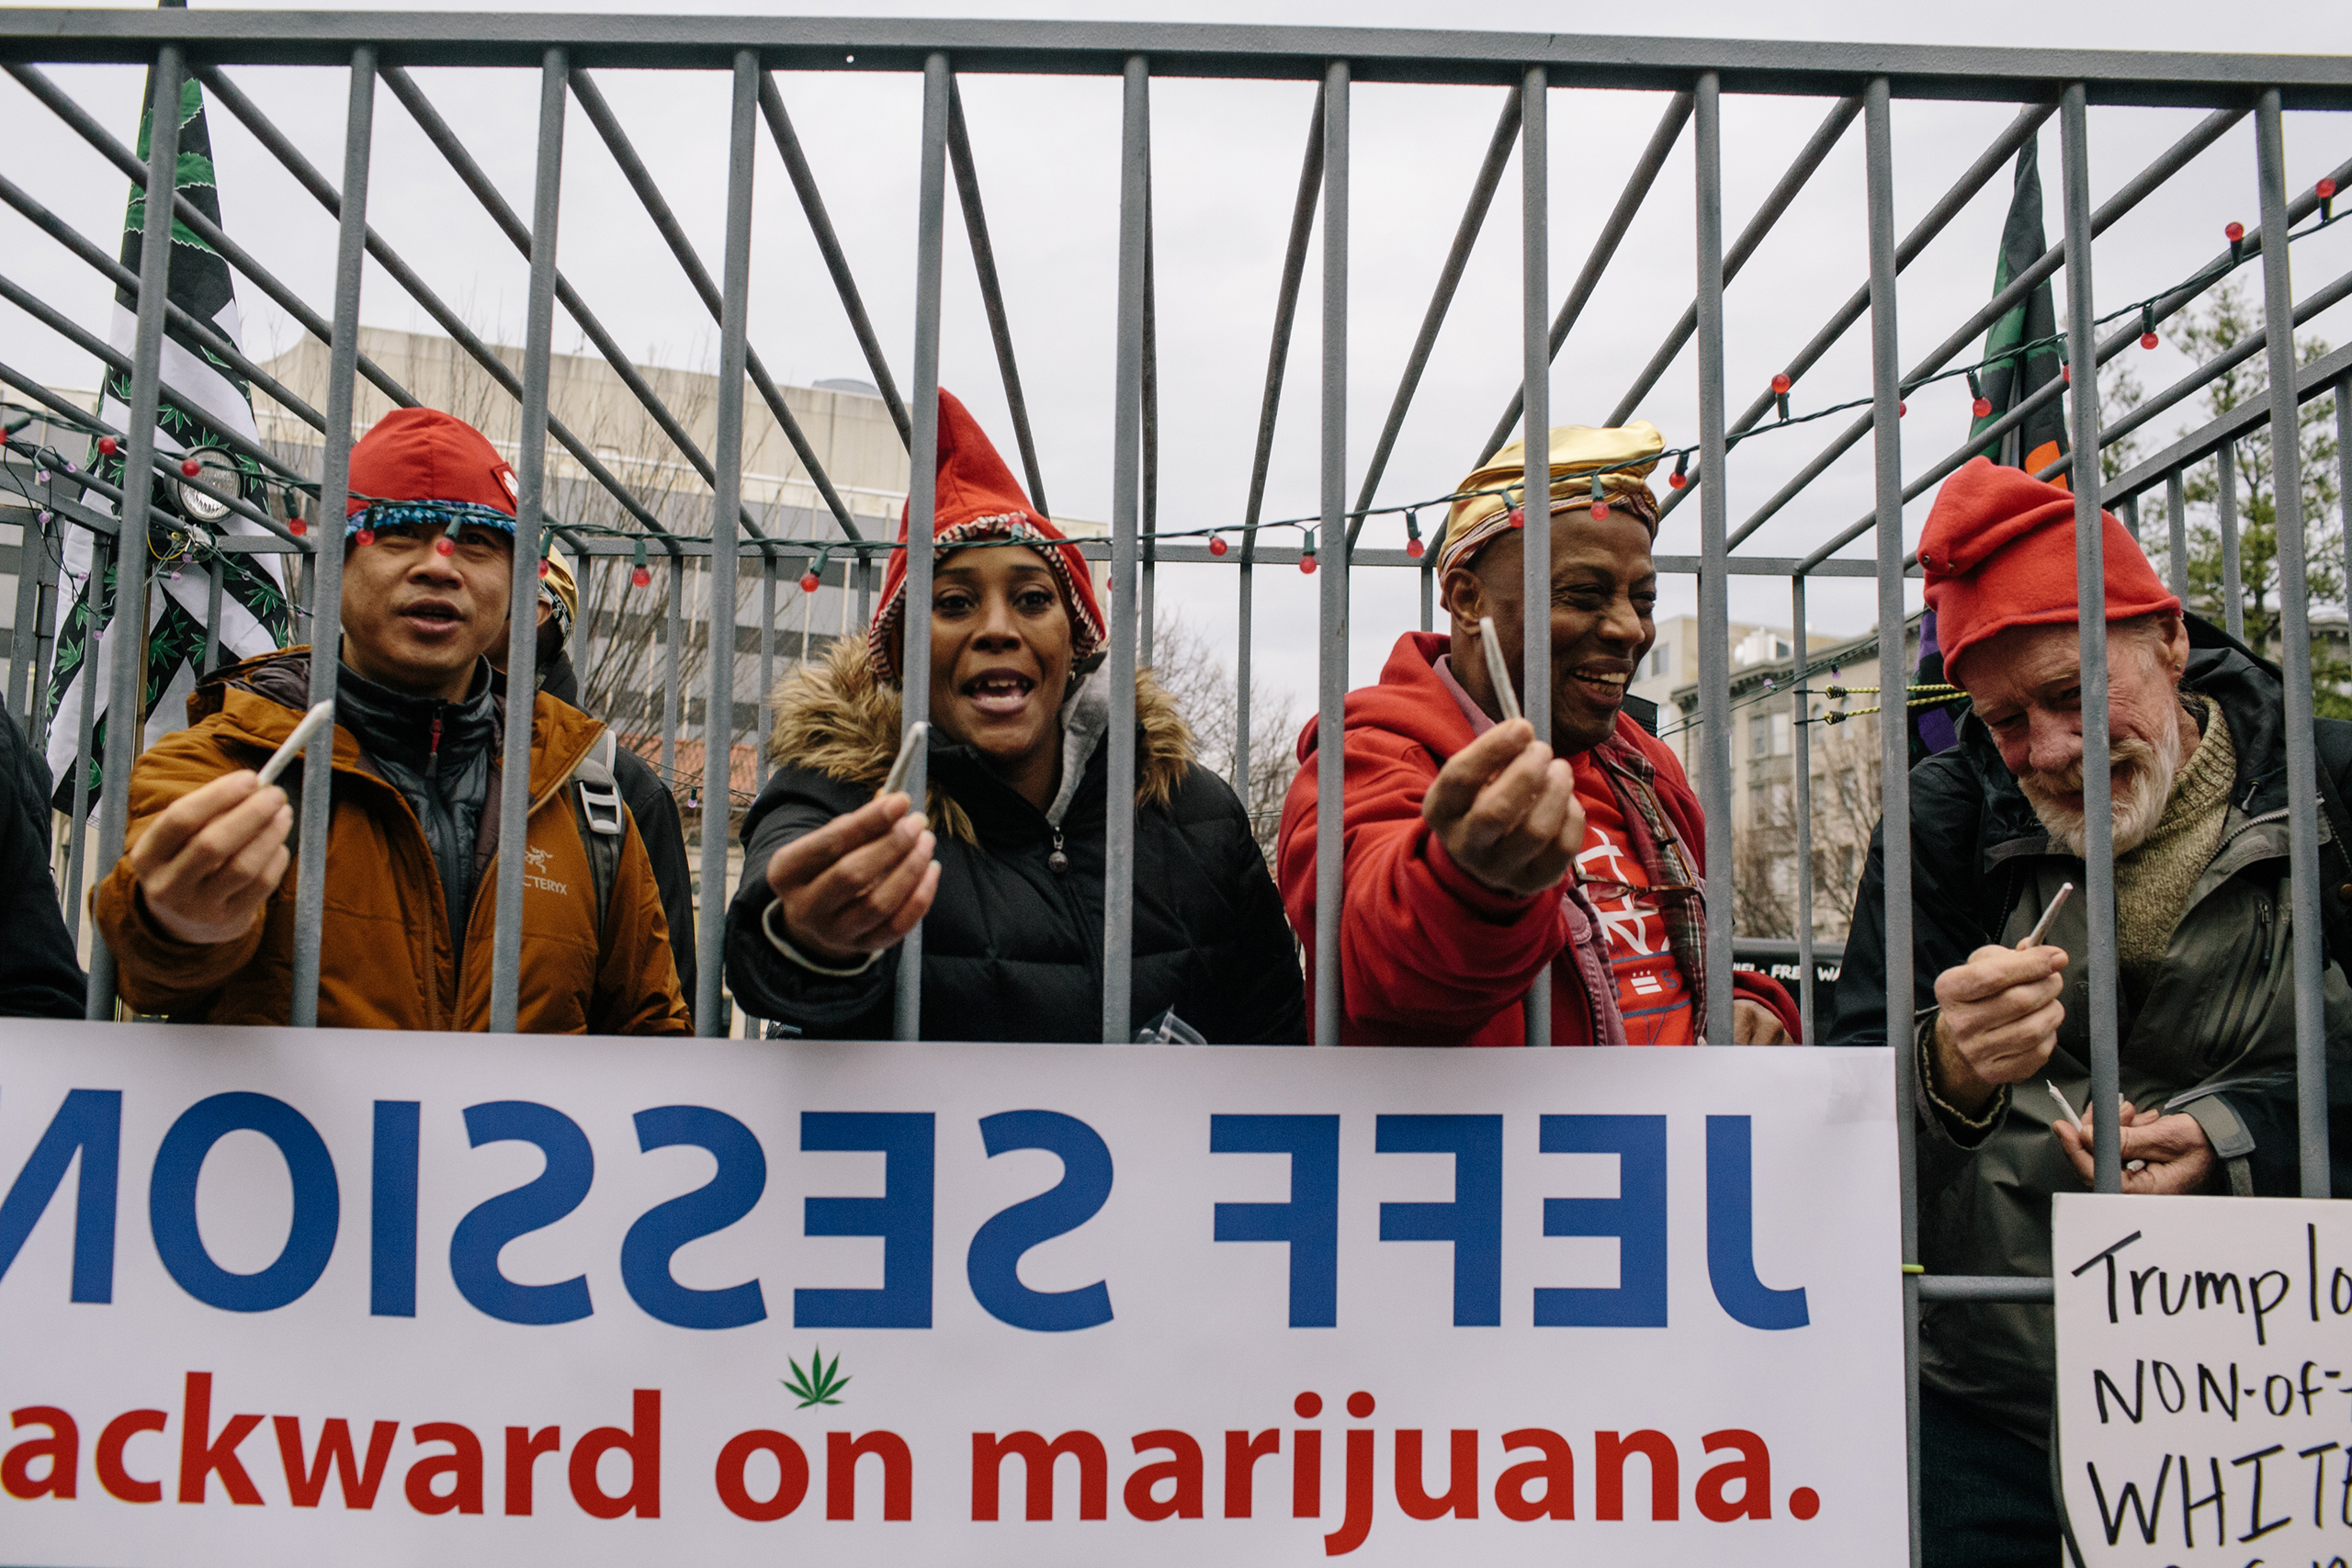 Kevin Keefe, right, and other volunteers stand in a pretend jail to pass out joints for DCMJ, a D.C.-based marijuana advocacy group, during the #Trump420 event on Jan. 20, 2017 in Washington.